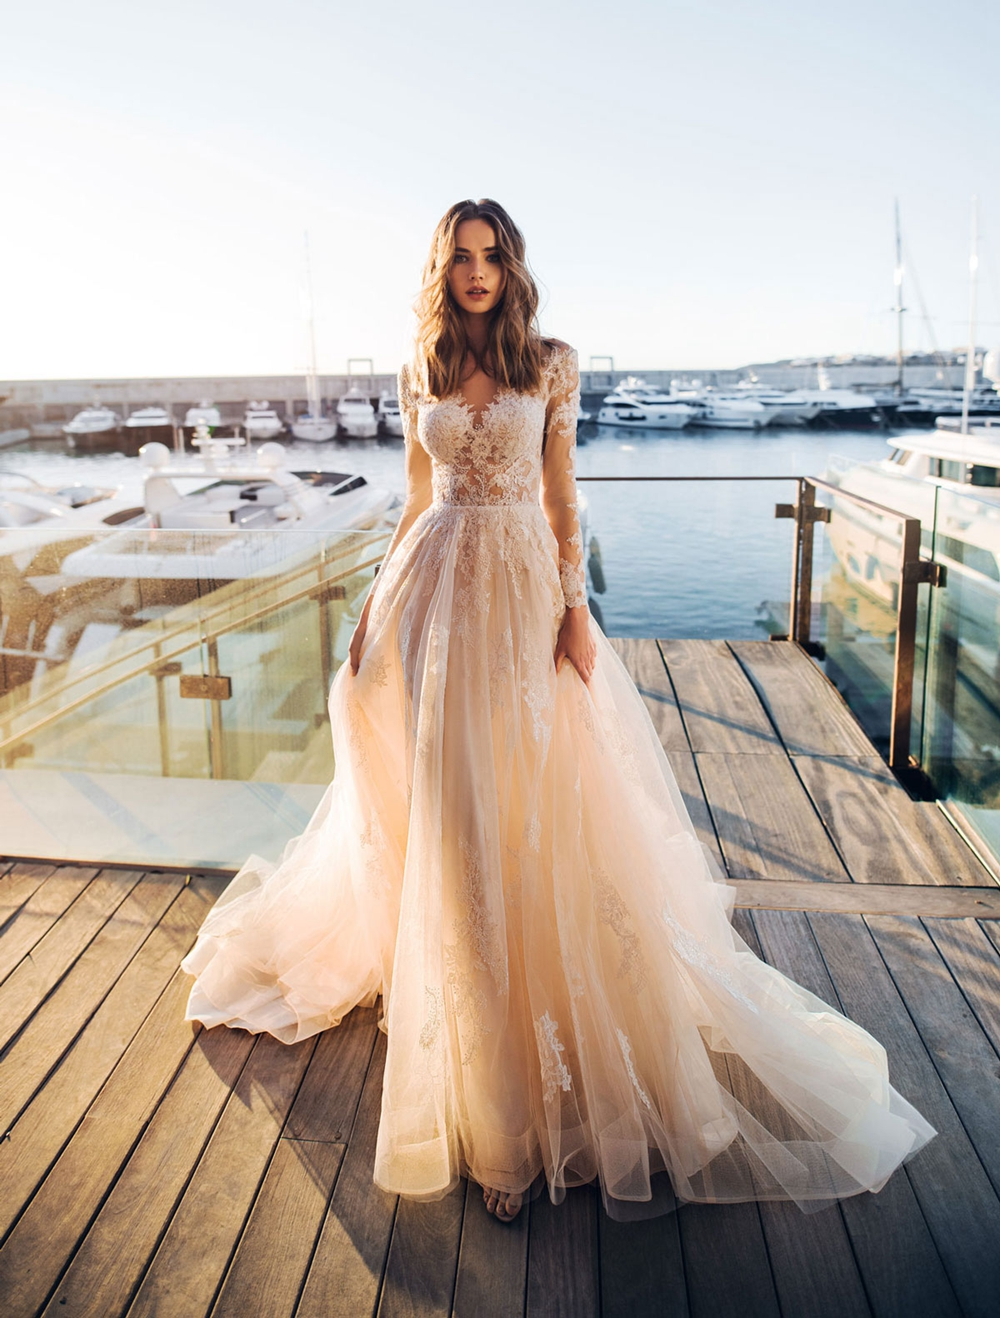 Sexy Sheer Lace Tulle  Boho Wedding Dresses Long Sleeves A-line Bridal Gown Bohemian Beach Informak Bride Dress Customized